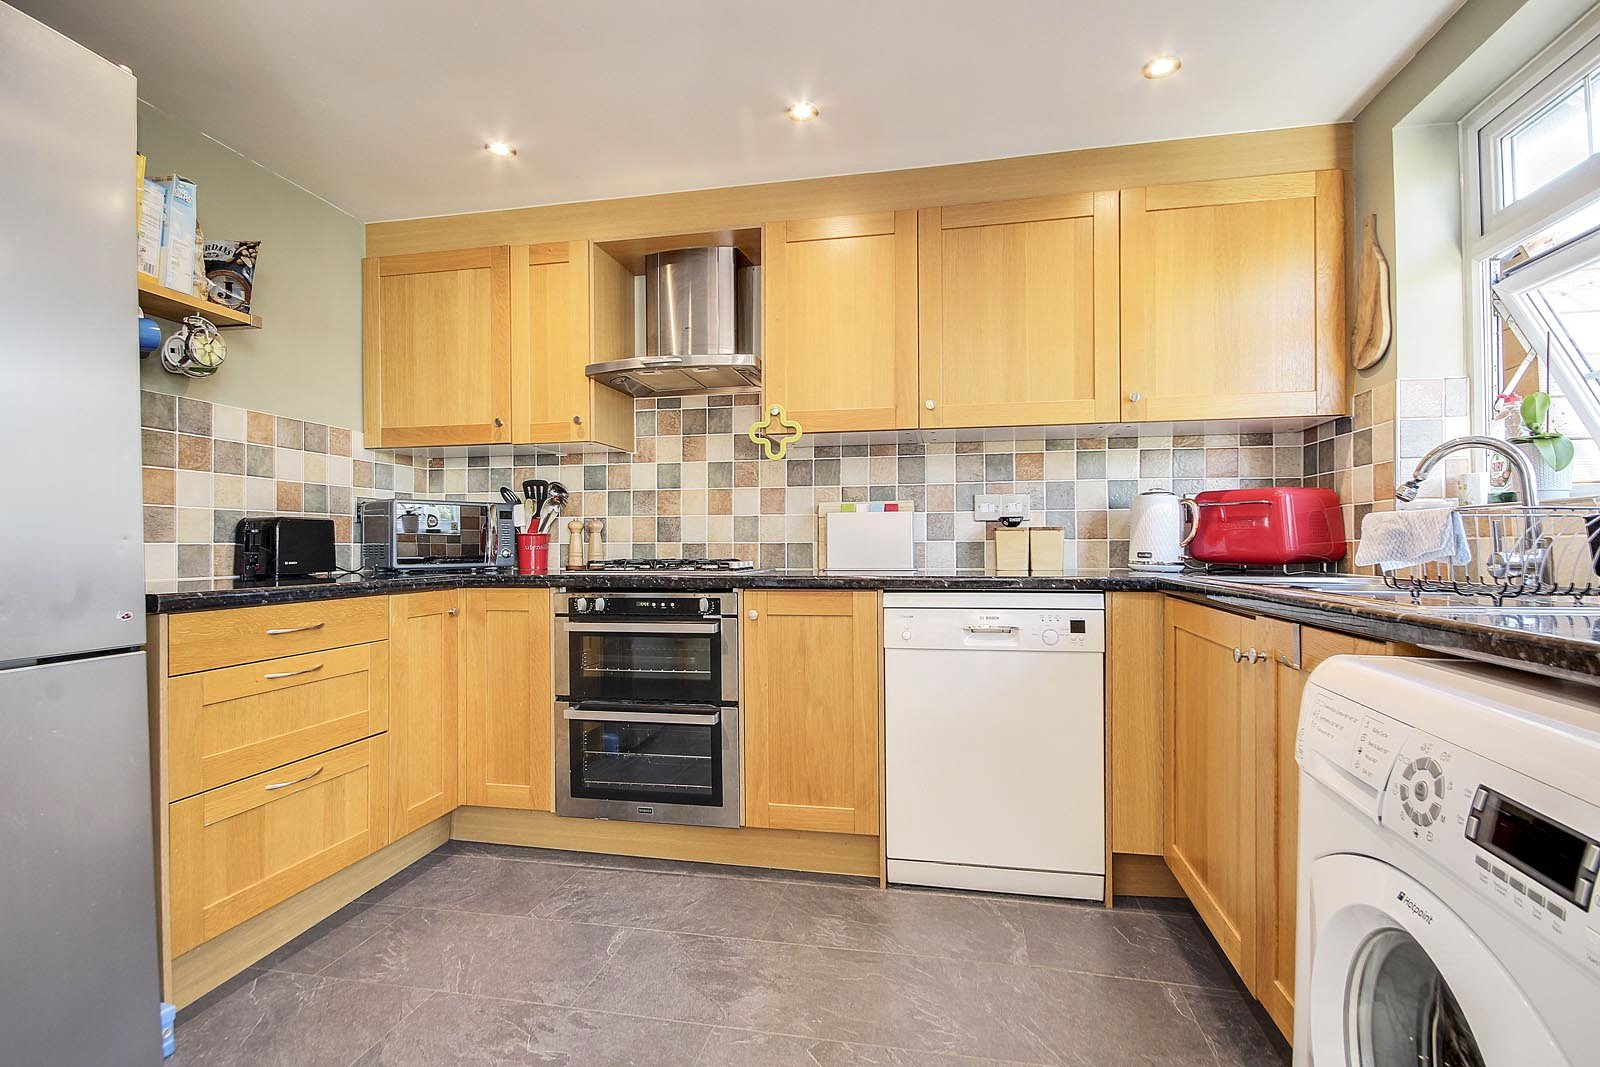 3 bed house for sale in Littlehampton, BN17 6RJ  - Property Image 2